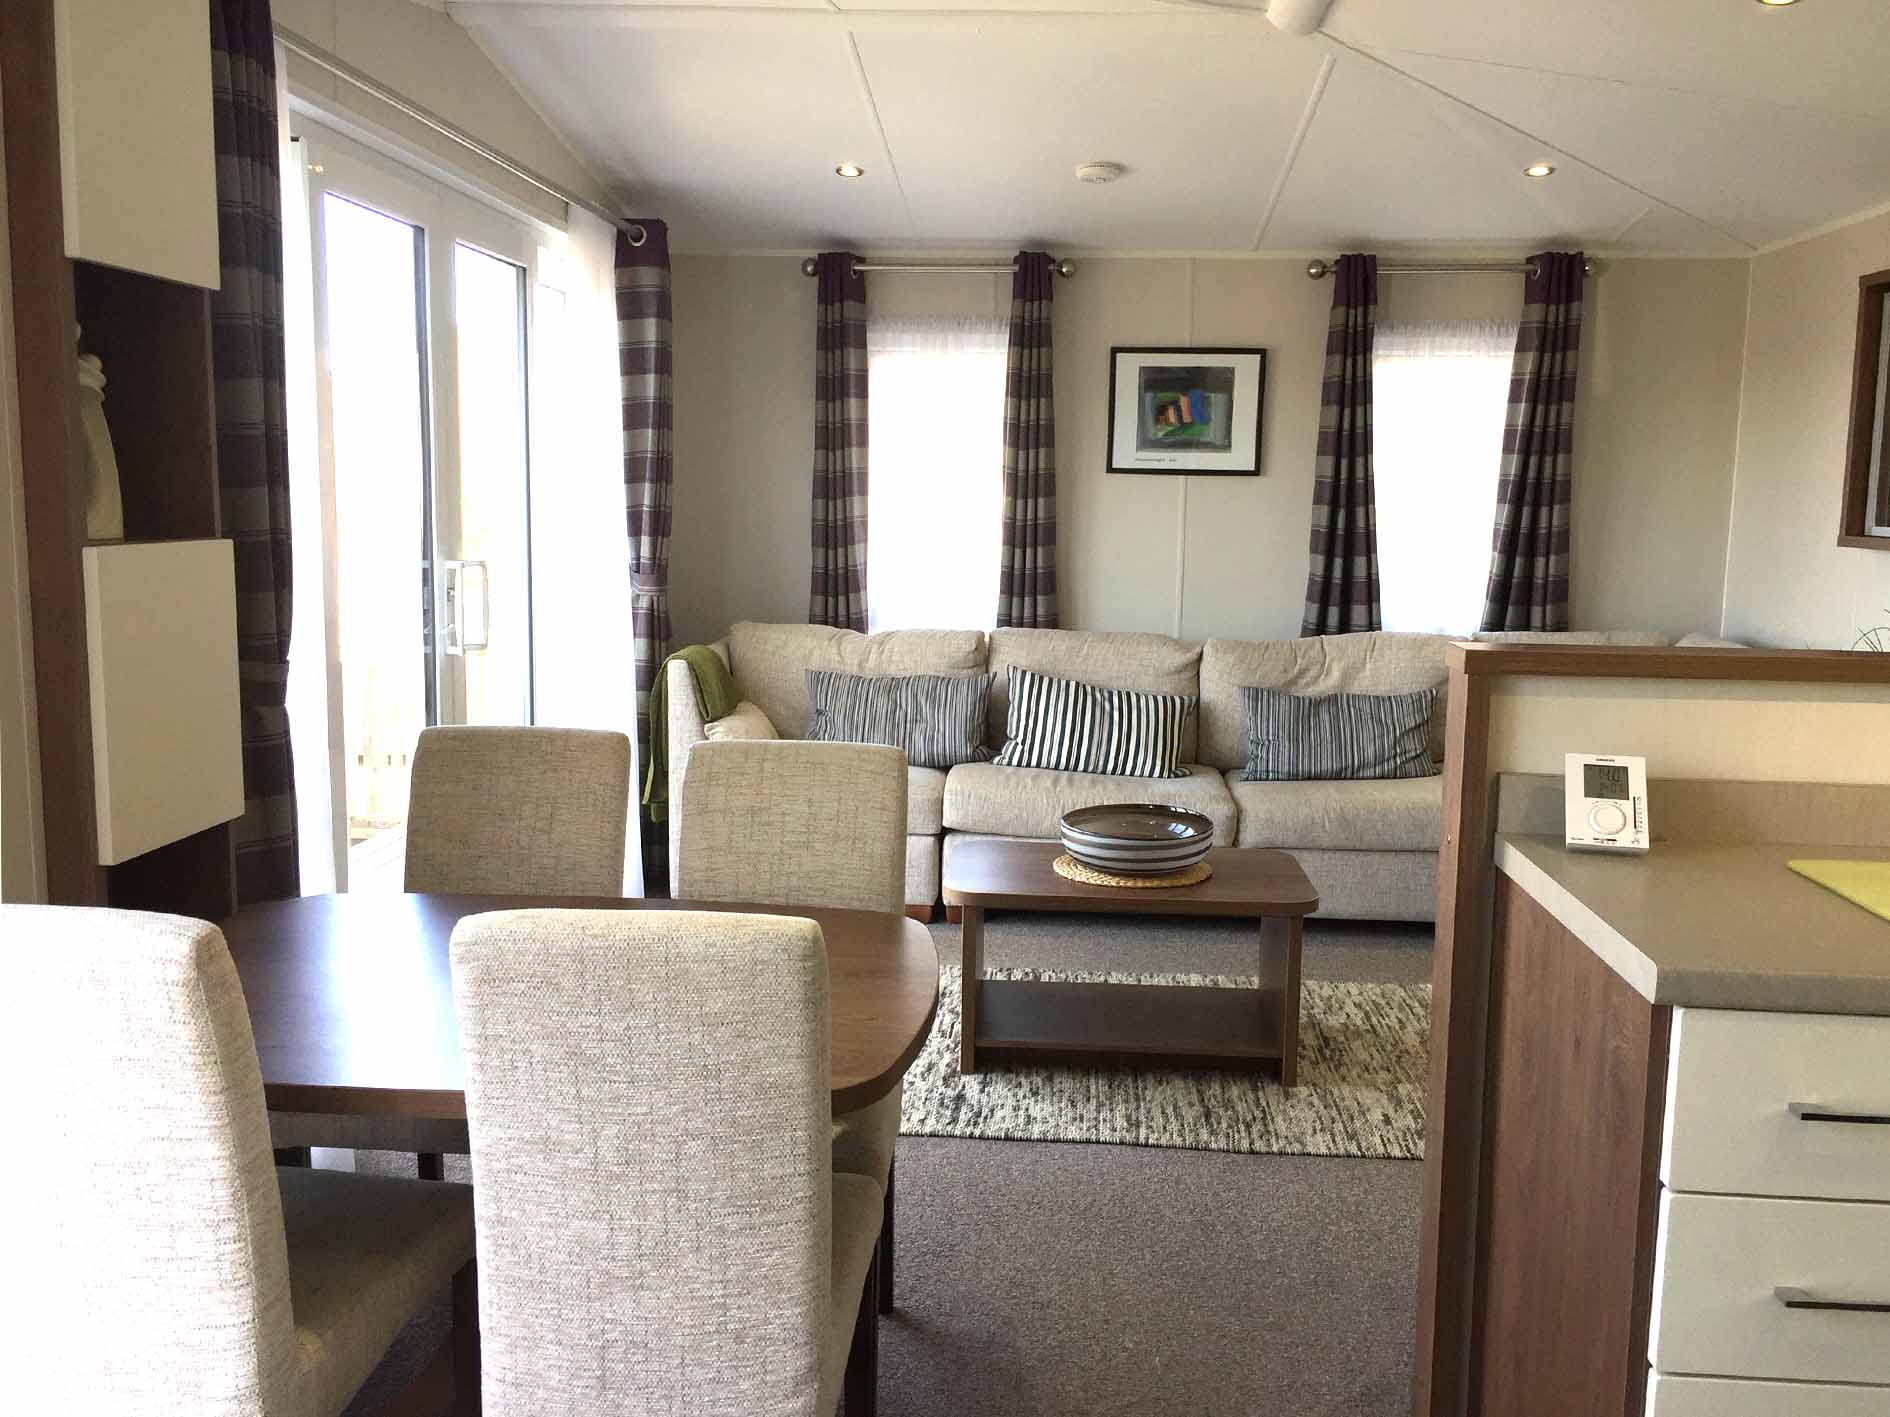 Oliday Lodges For Sale In Wales, Holiday Lodges Wales, Lounge